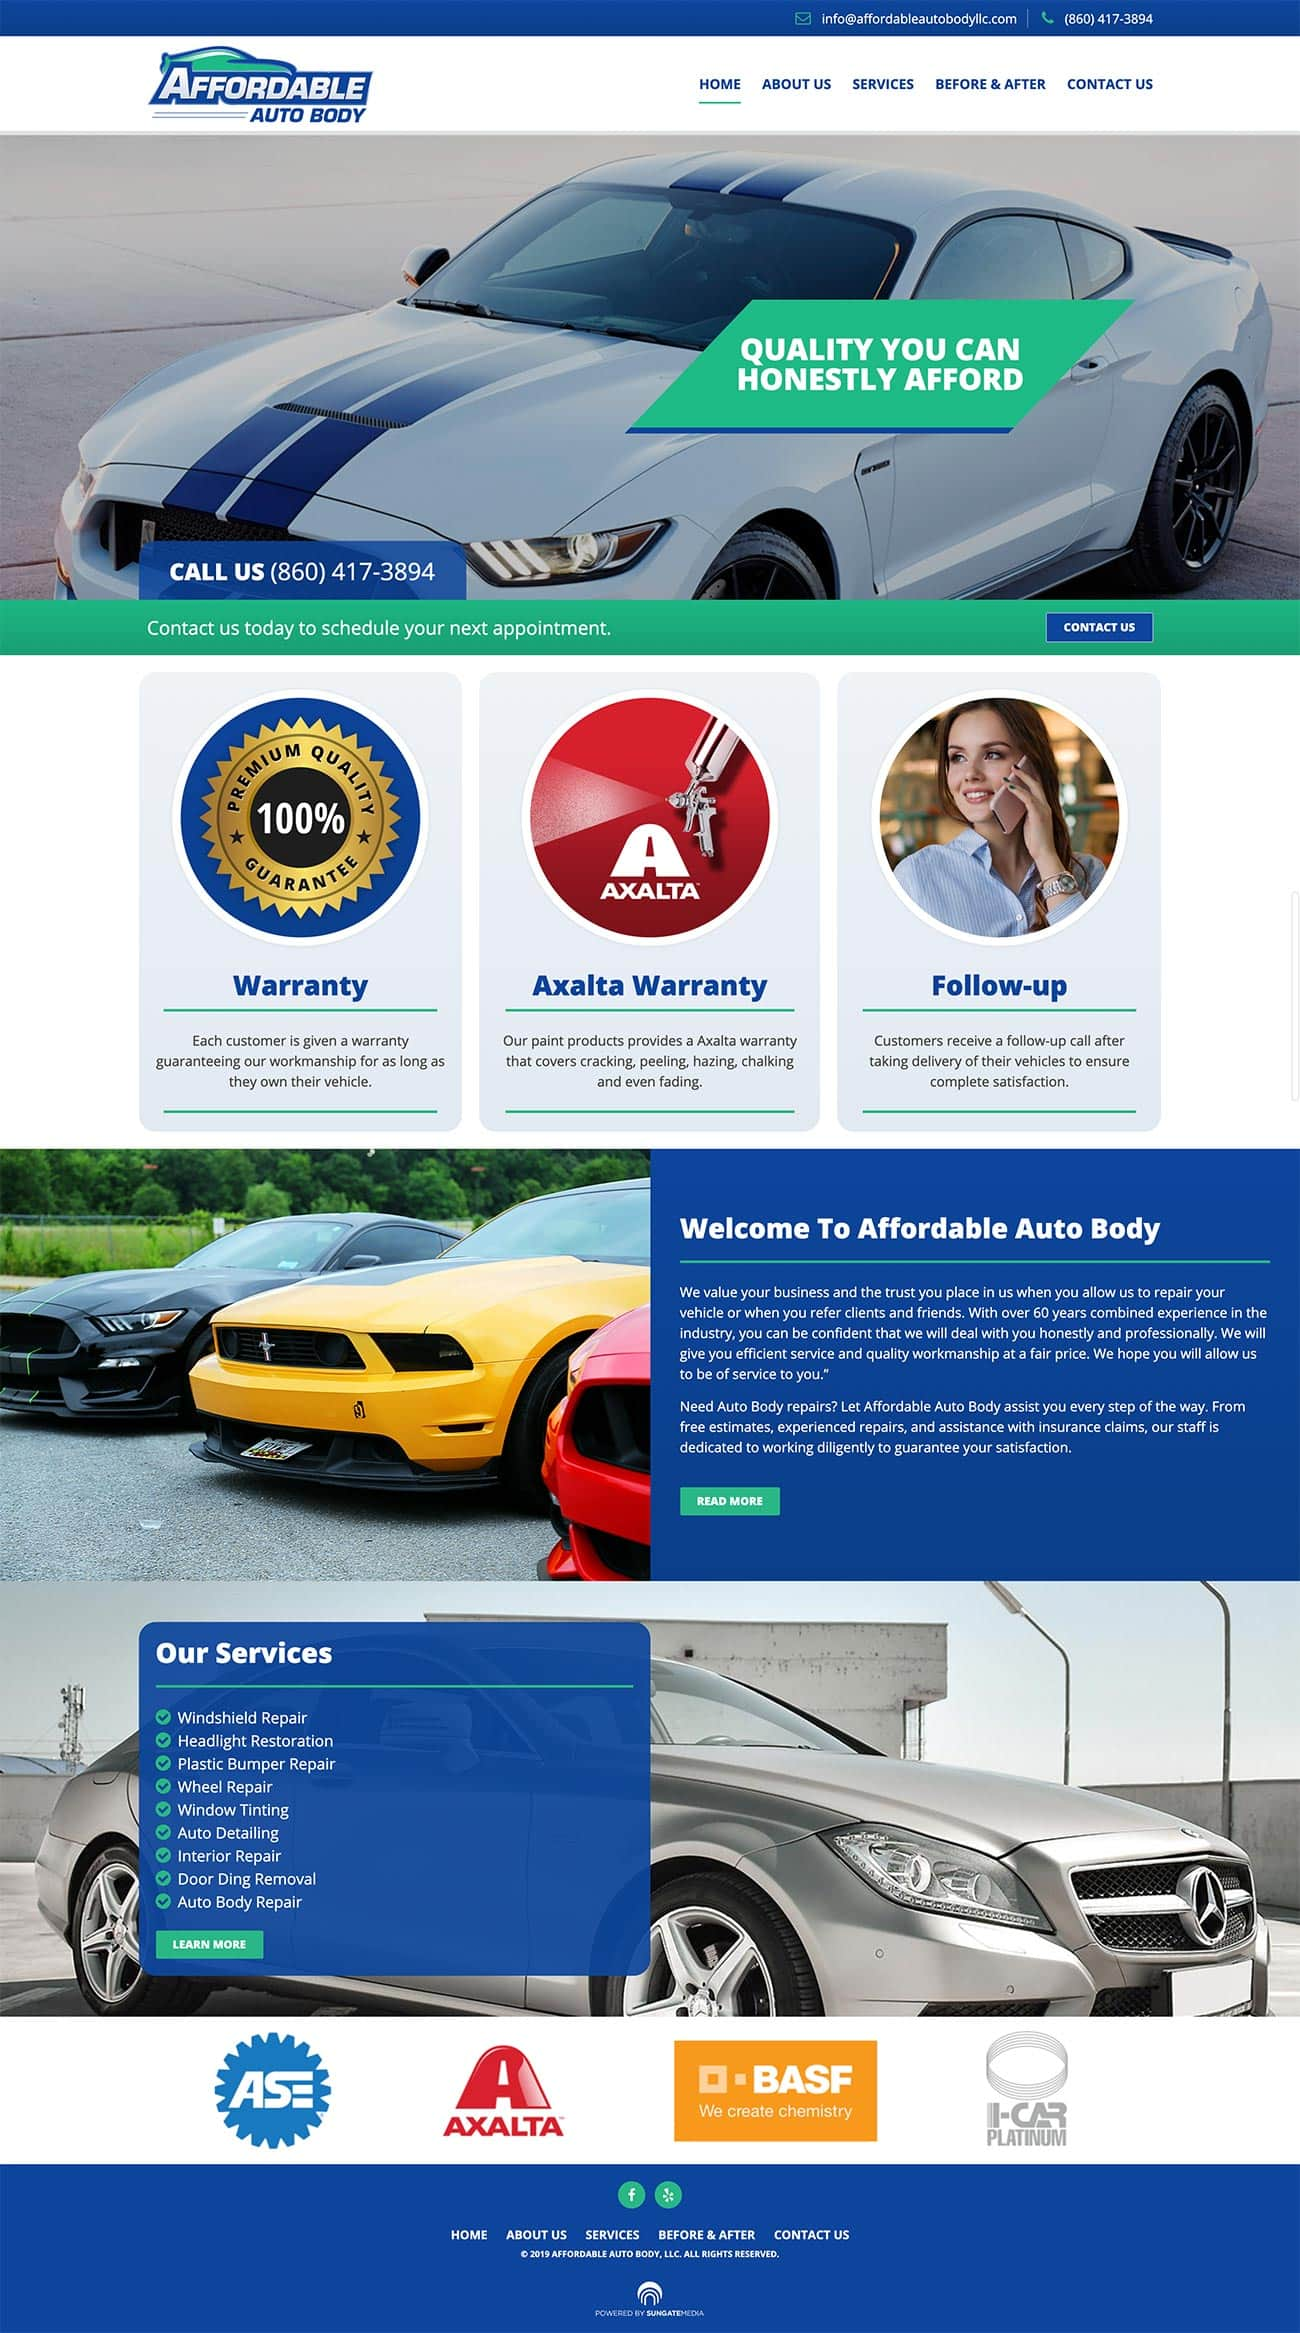 Affordable Auto Body Website